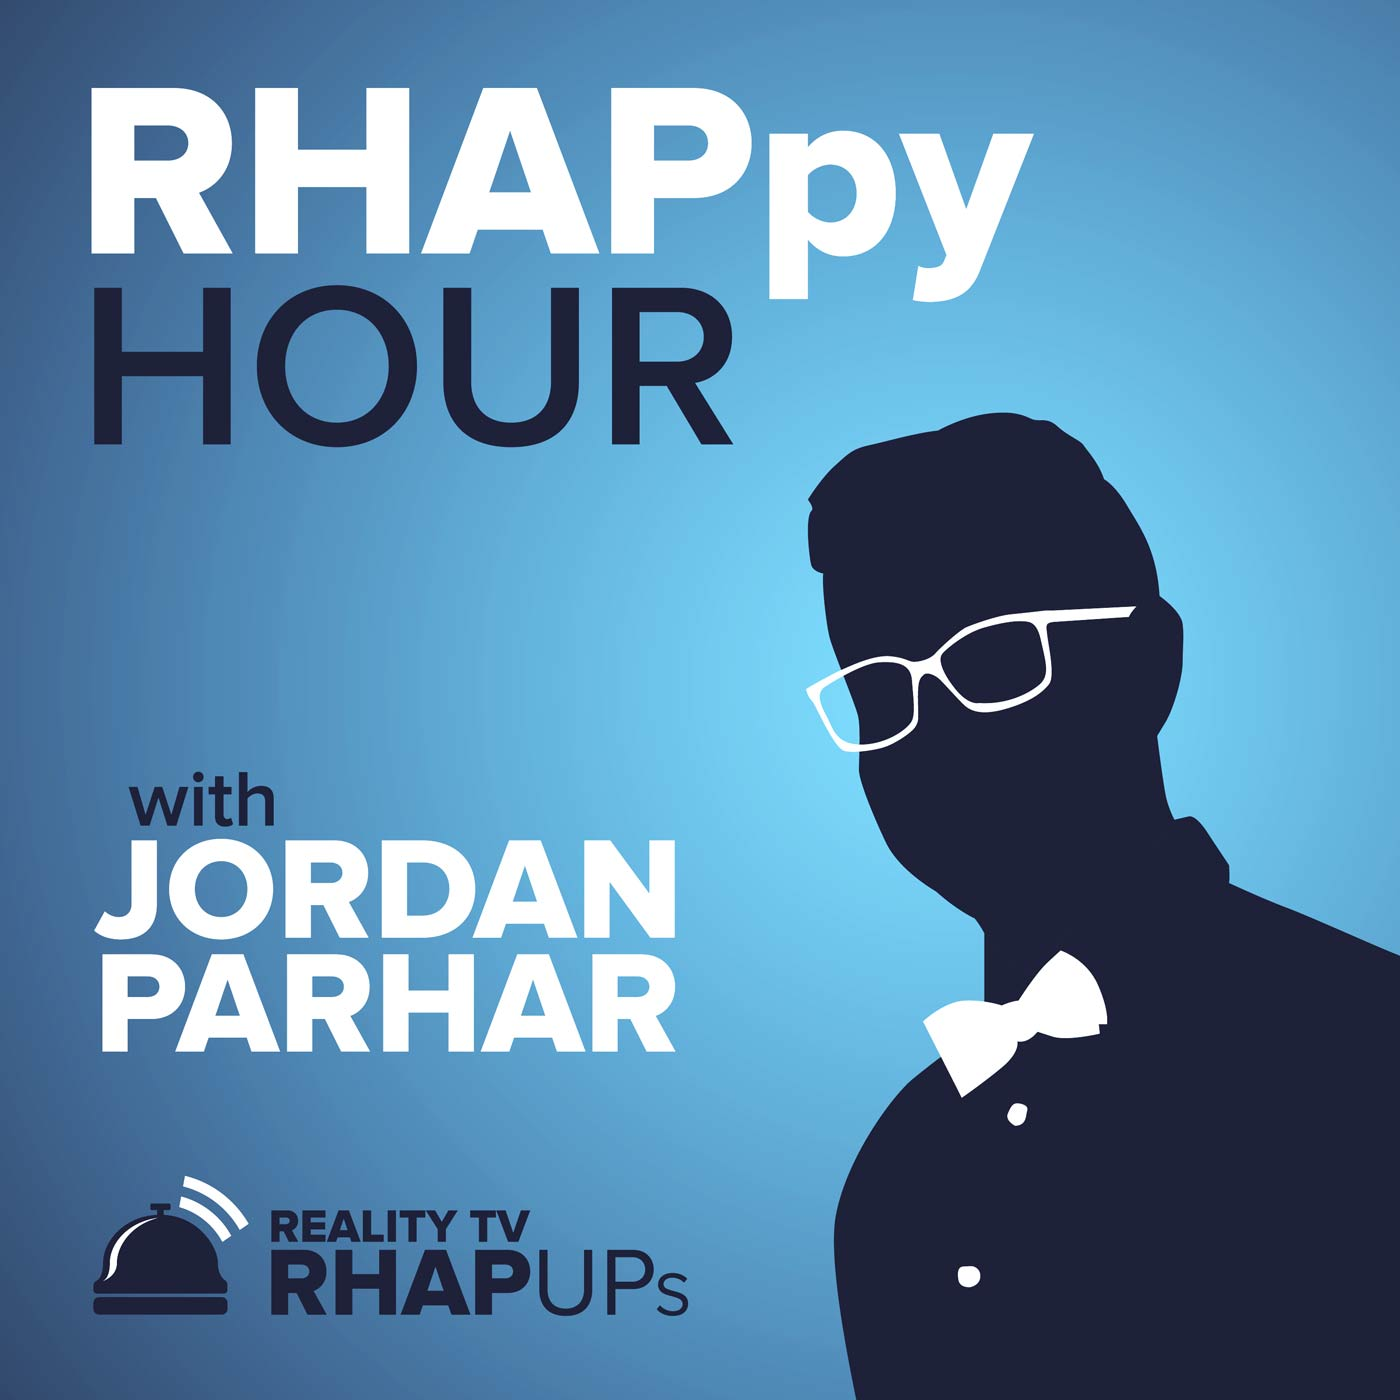 The R H A P p y Hour